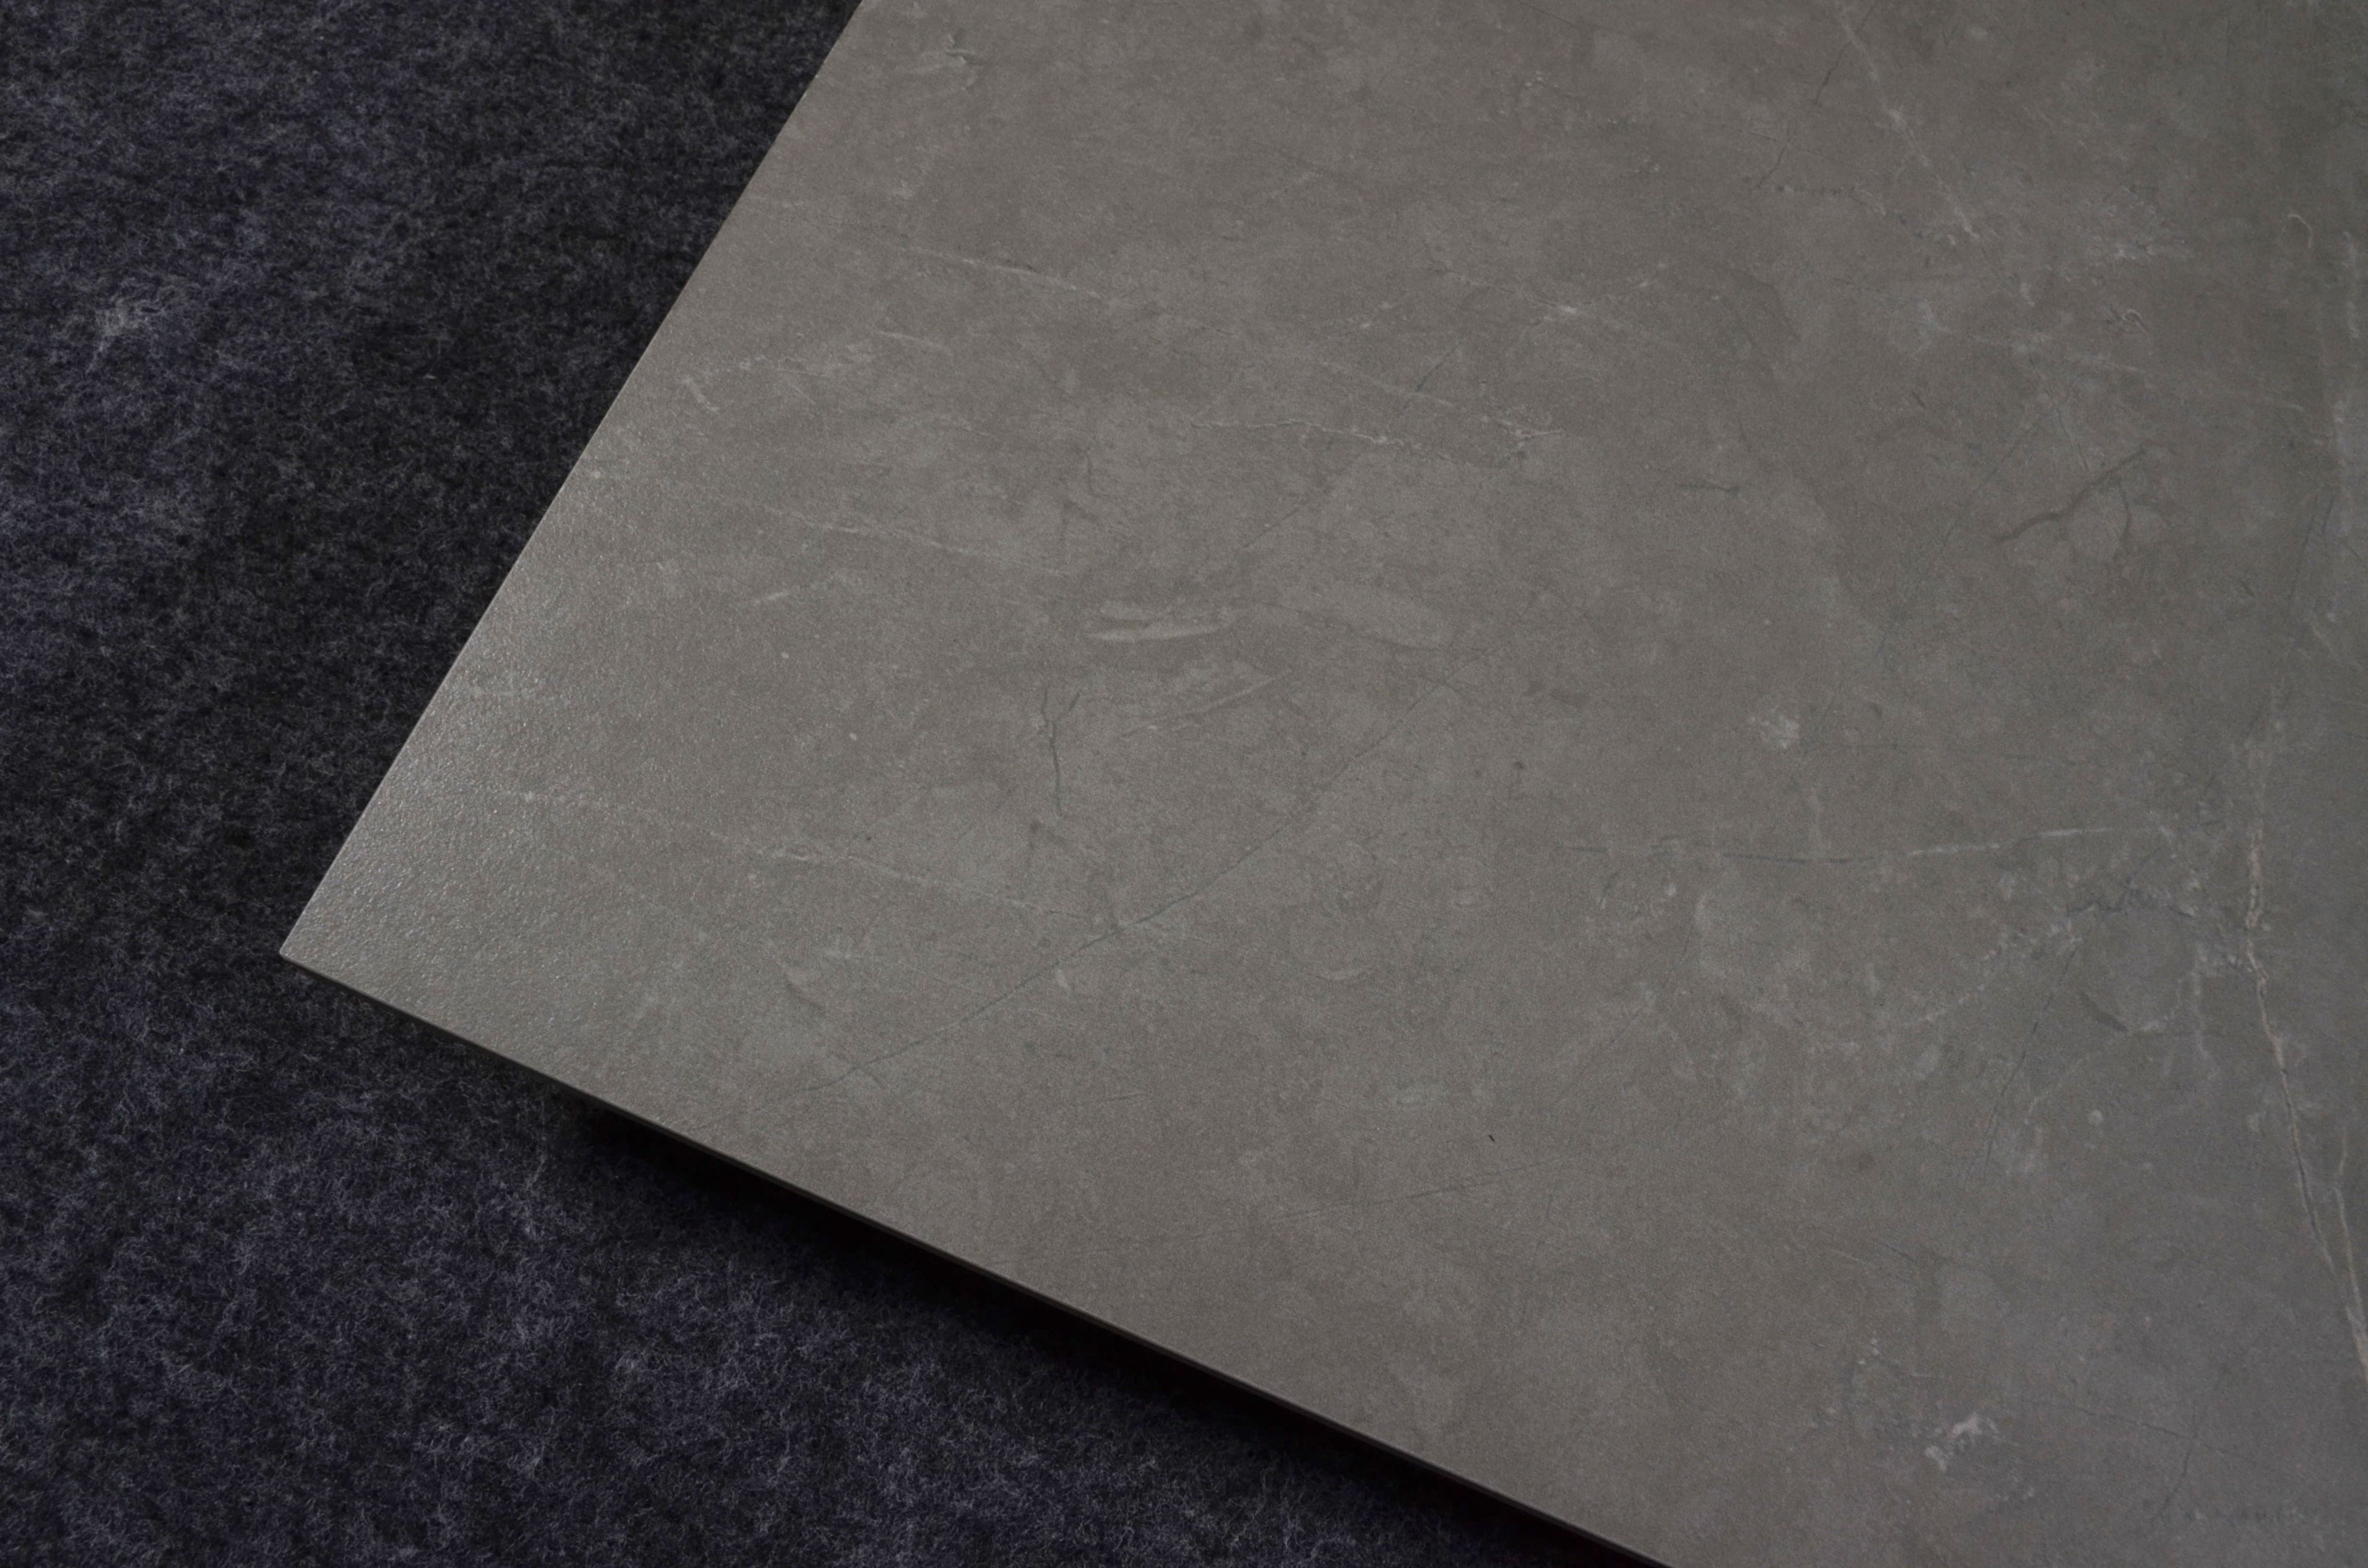 Grey 600 X 1200mm Glazed Porcelain Floor Tile In 2020 Tile Floor Porcelain Flooring Colorful Tile Floor